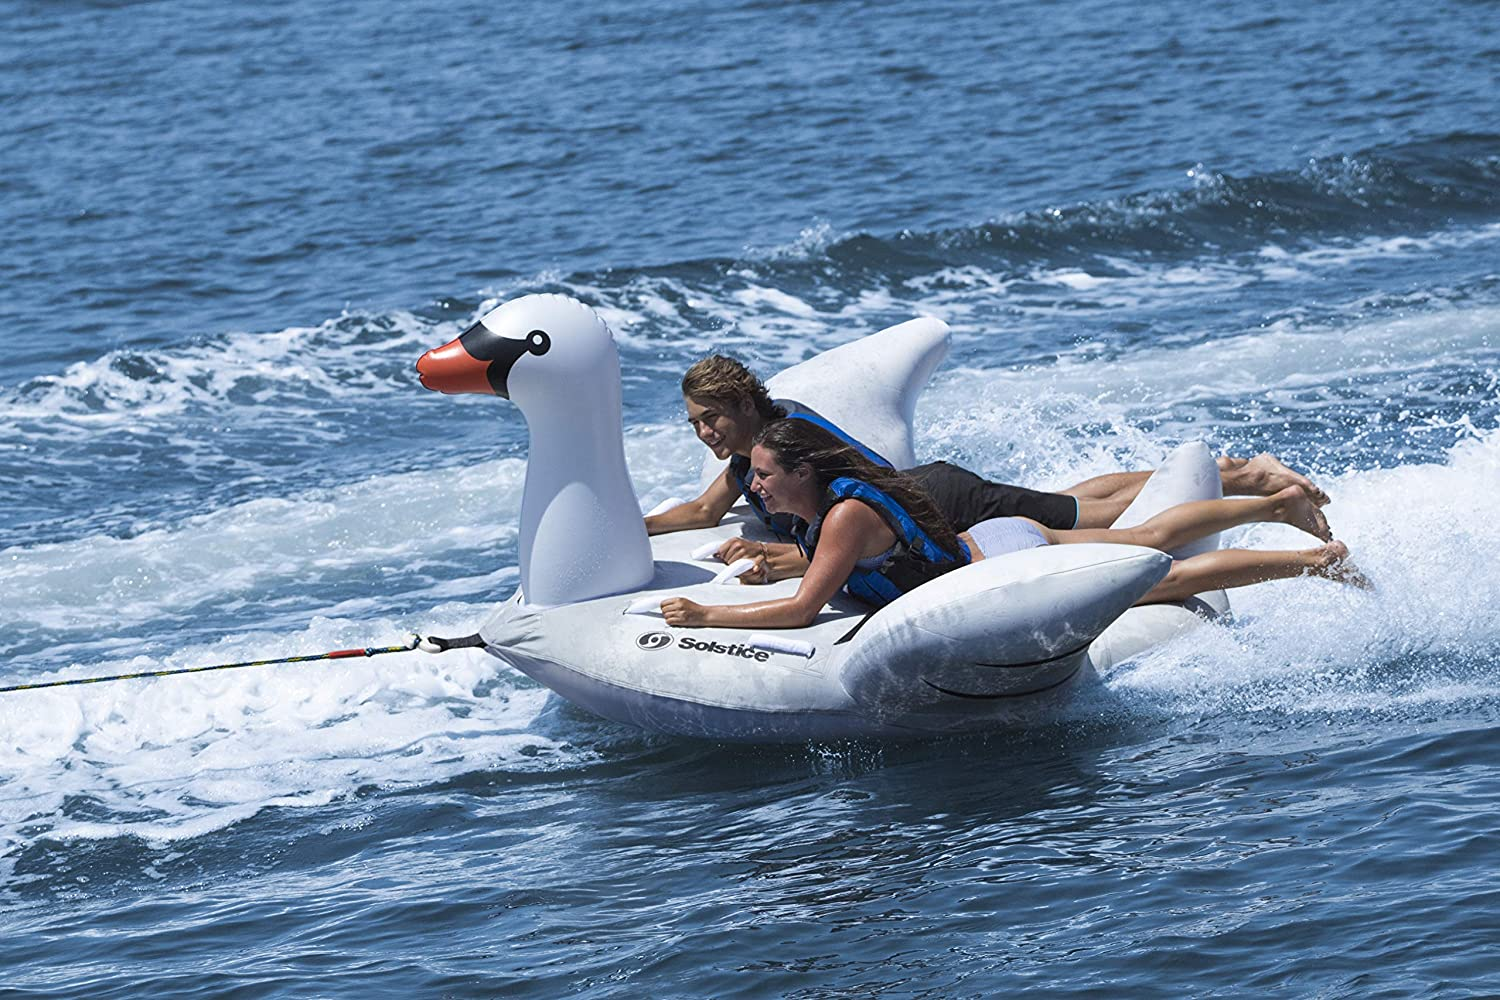 Solstice Lay-On Swan Towable Inflatable Raft Fits 1-2 Riders